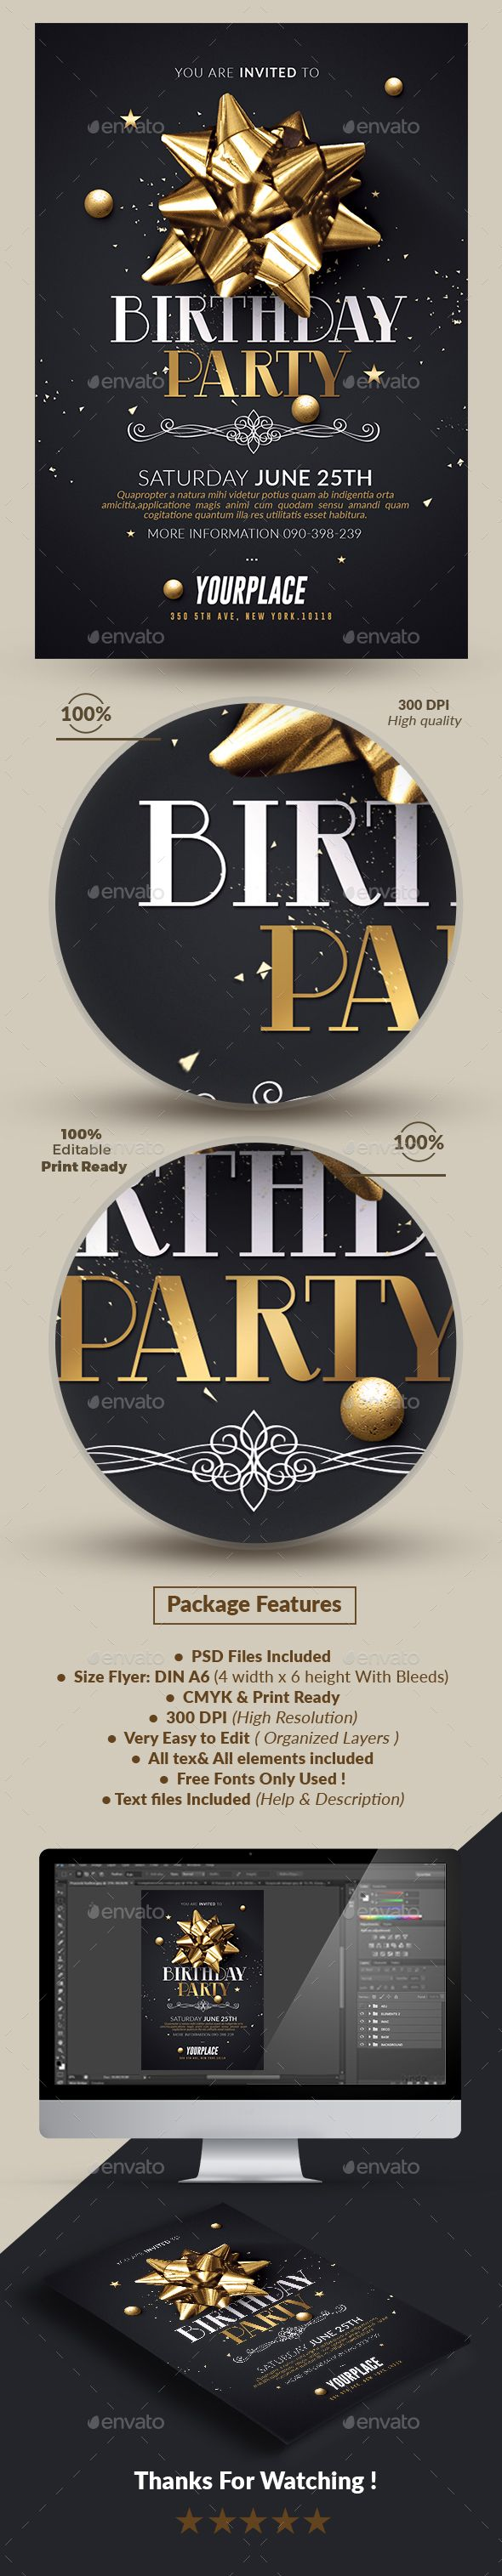 124 best Invitations images – Party Invitation Flyer